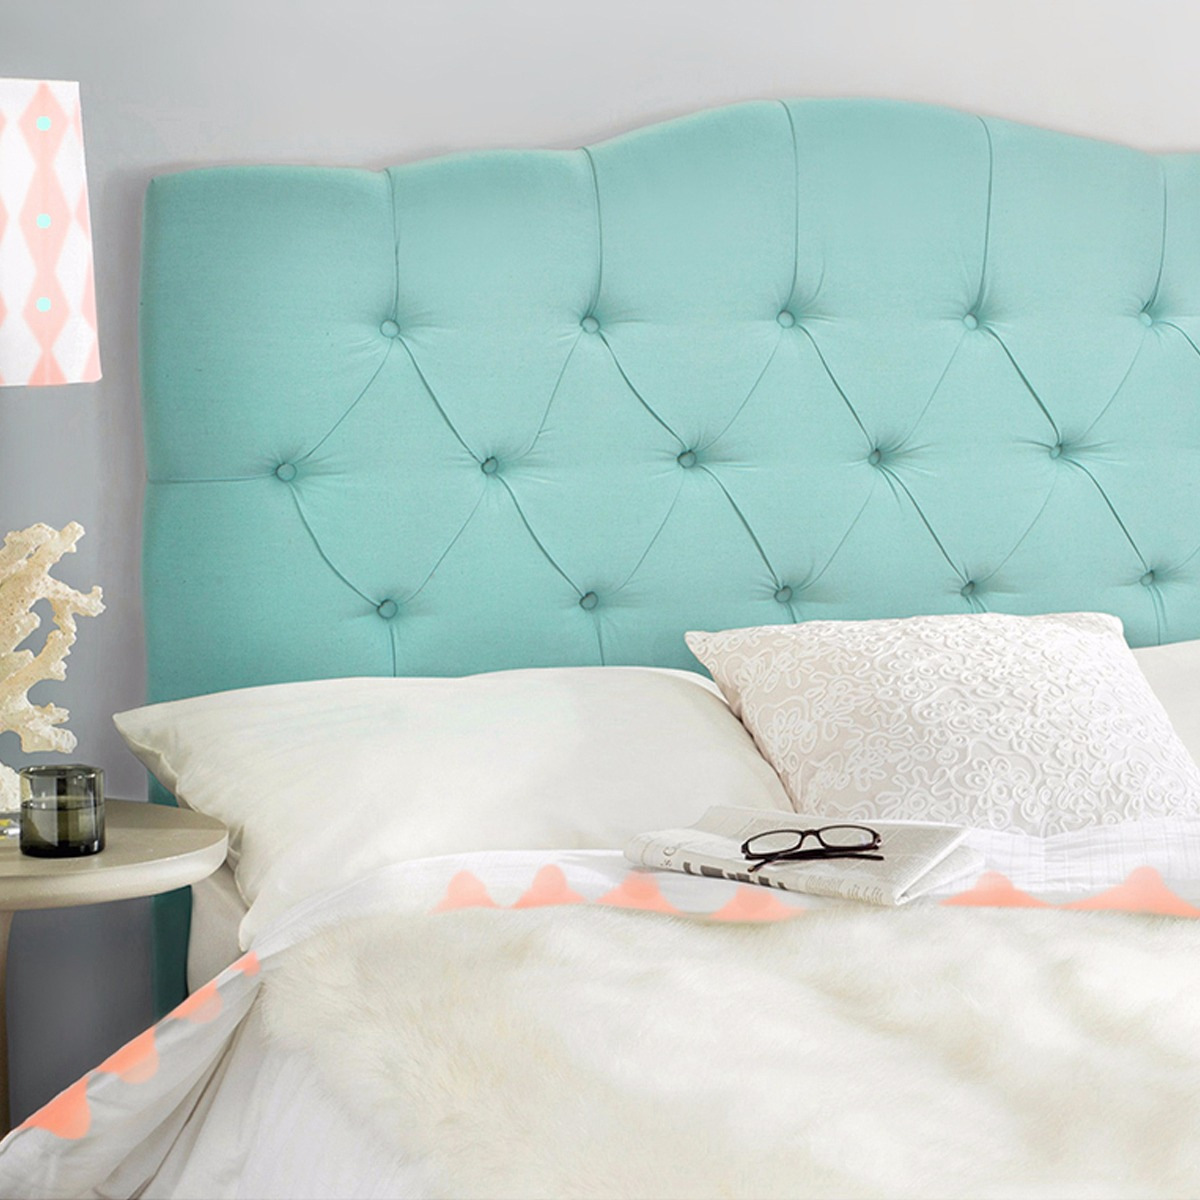 Bed Headboard Full Queen Bed Headboard Modern Tufted Fabric Sea Mist